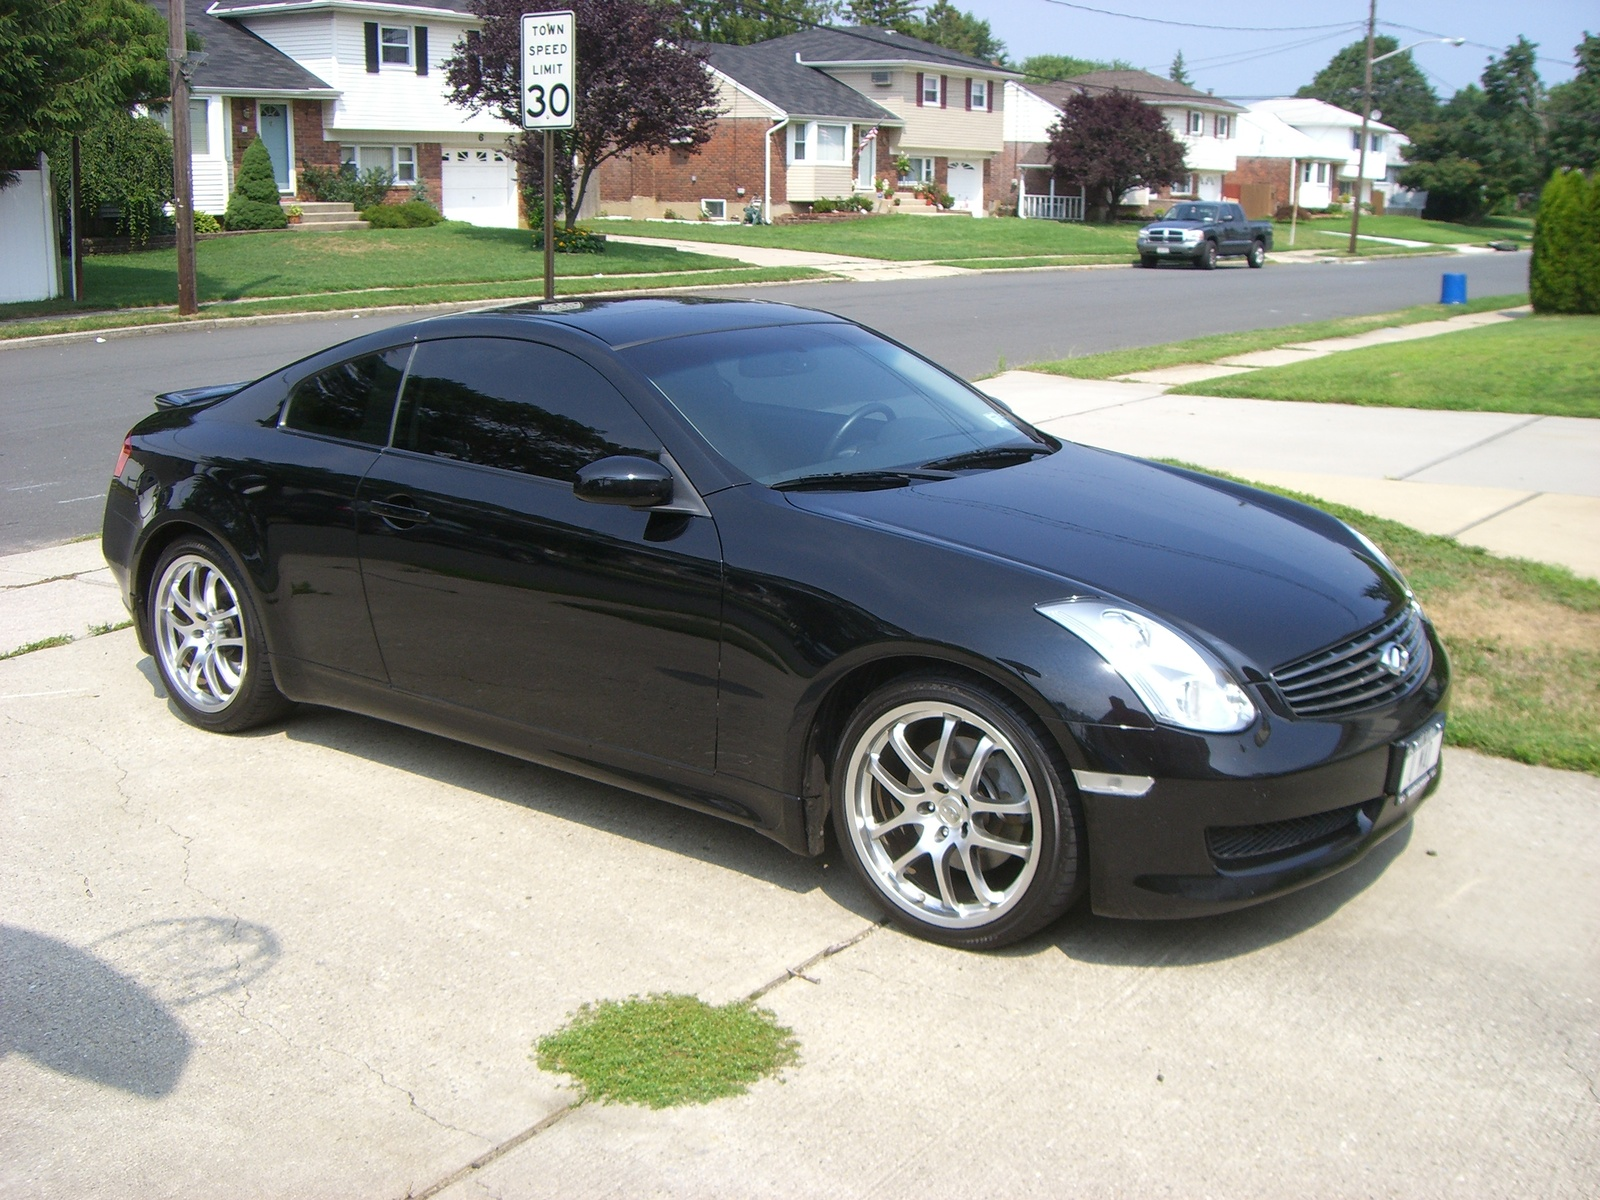 Infiniti g35 coupe google search infiniti g coupe respect my infiniti g35 coupe google search infiniti g coupe respect my gangster pinterest search coupe and infinity vanachro Images